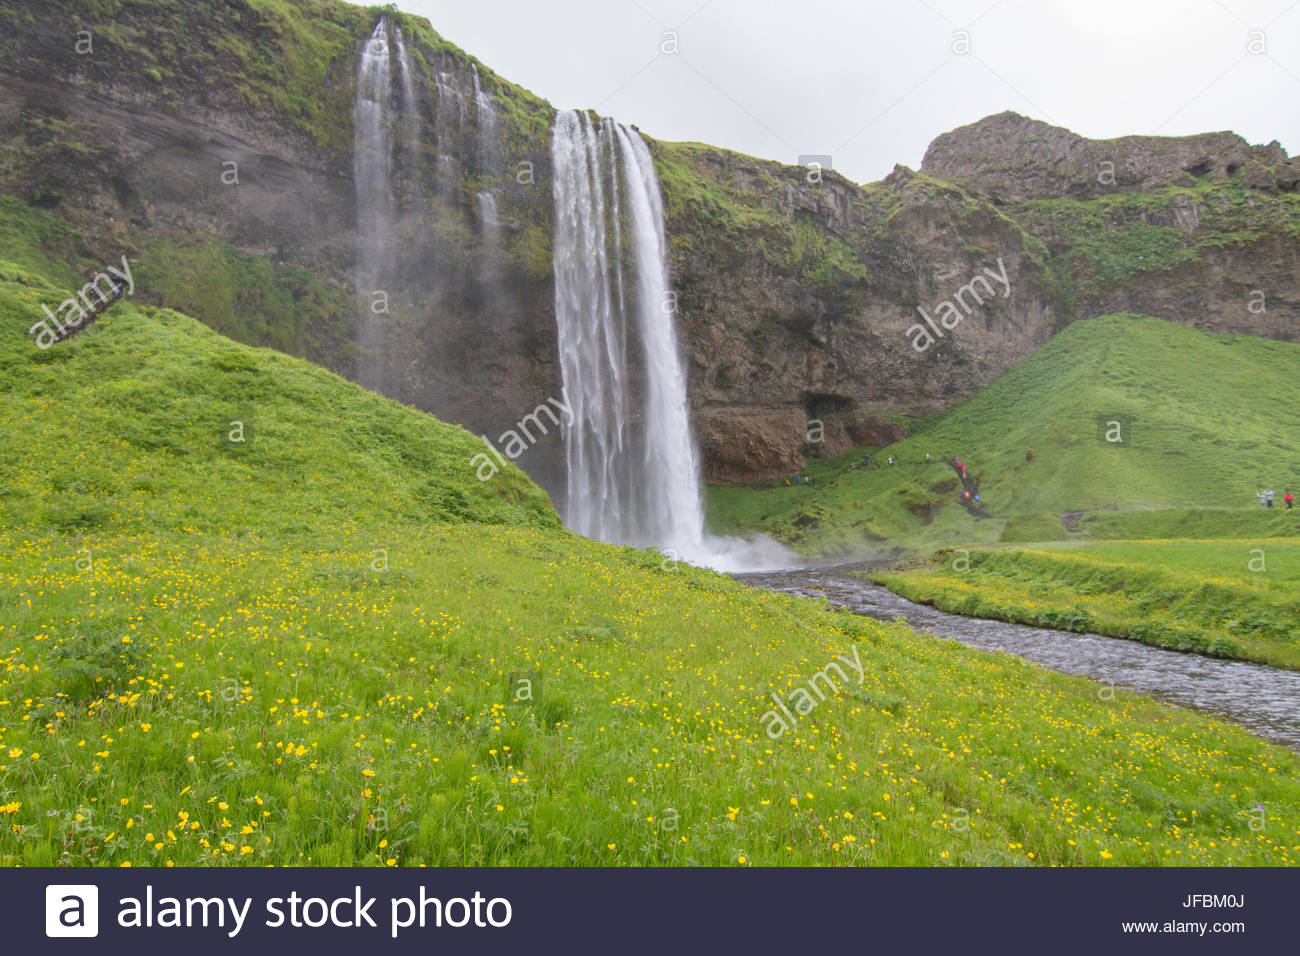 A scenic view of Seljalandsfoss Waterfall. - Stock Image